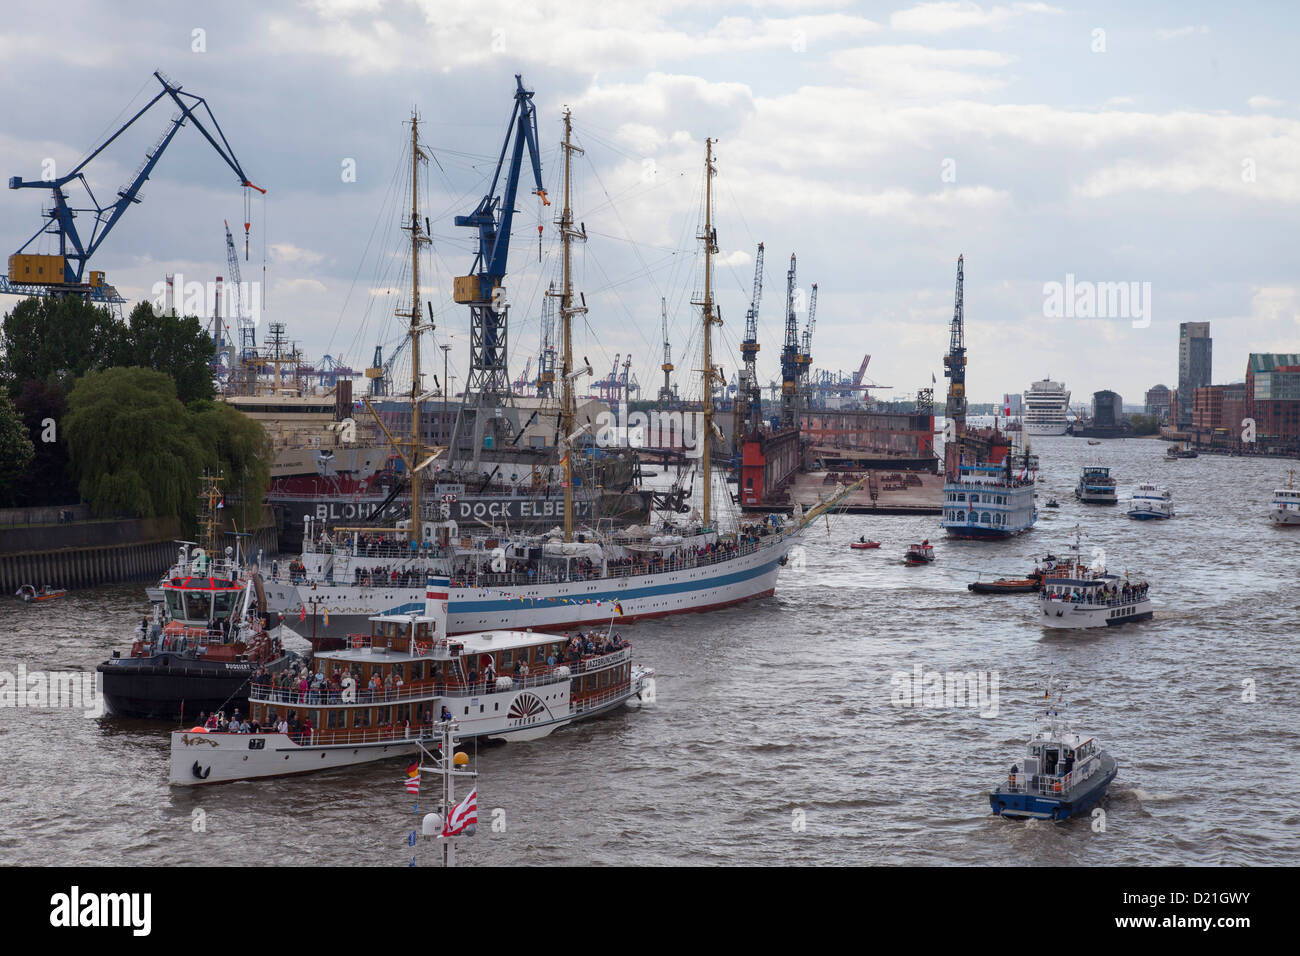 Windjammer tall sailing ship Krusenstern with other ships and boats on Elbe river as part of Hamburg harbour birthday - Stock Image